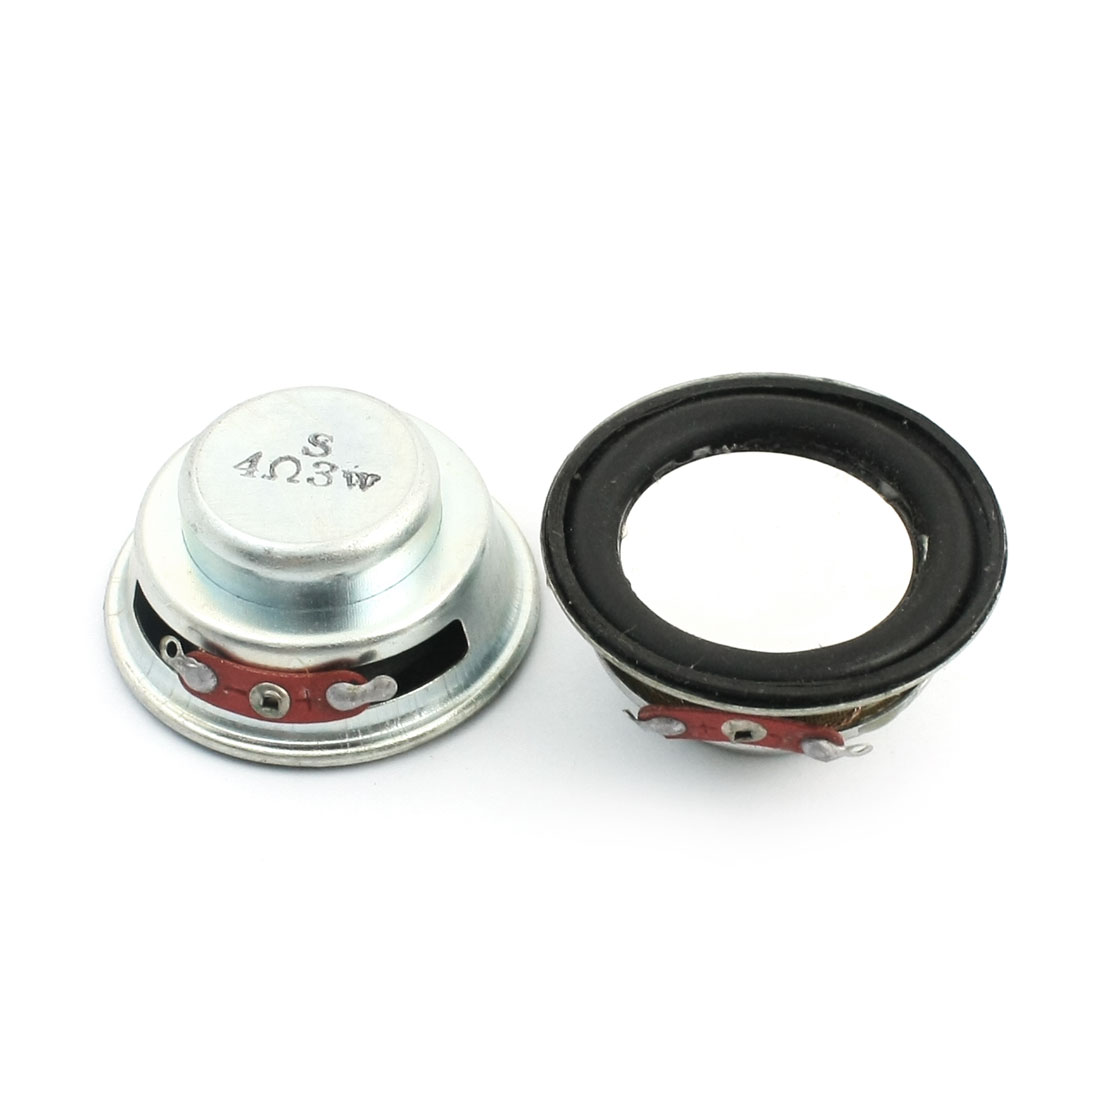 2Pcs 3Watt 4 Ohm 40mm Round Aluminum Shell Internal Magnet Type Music Player Audio Speaker Amplifier Loundspeaker Trumpet